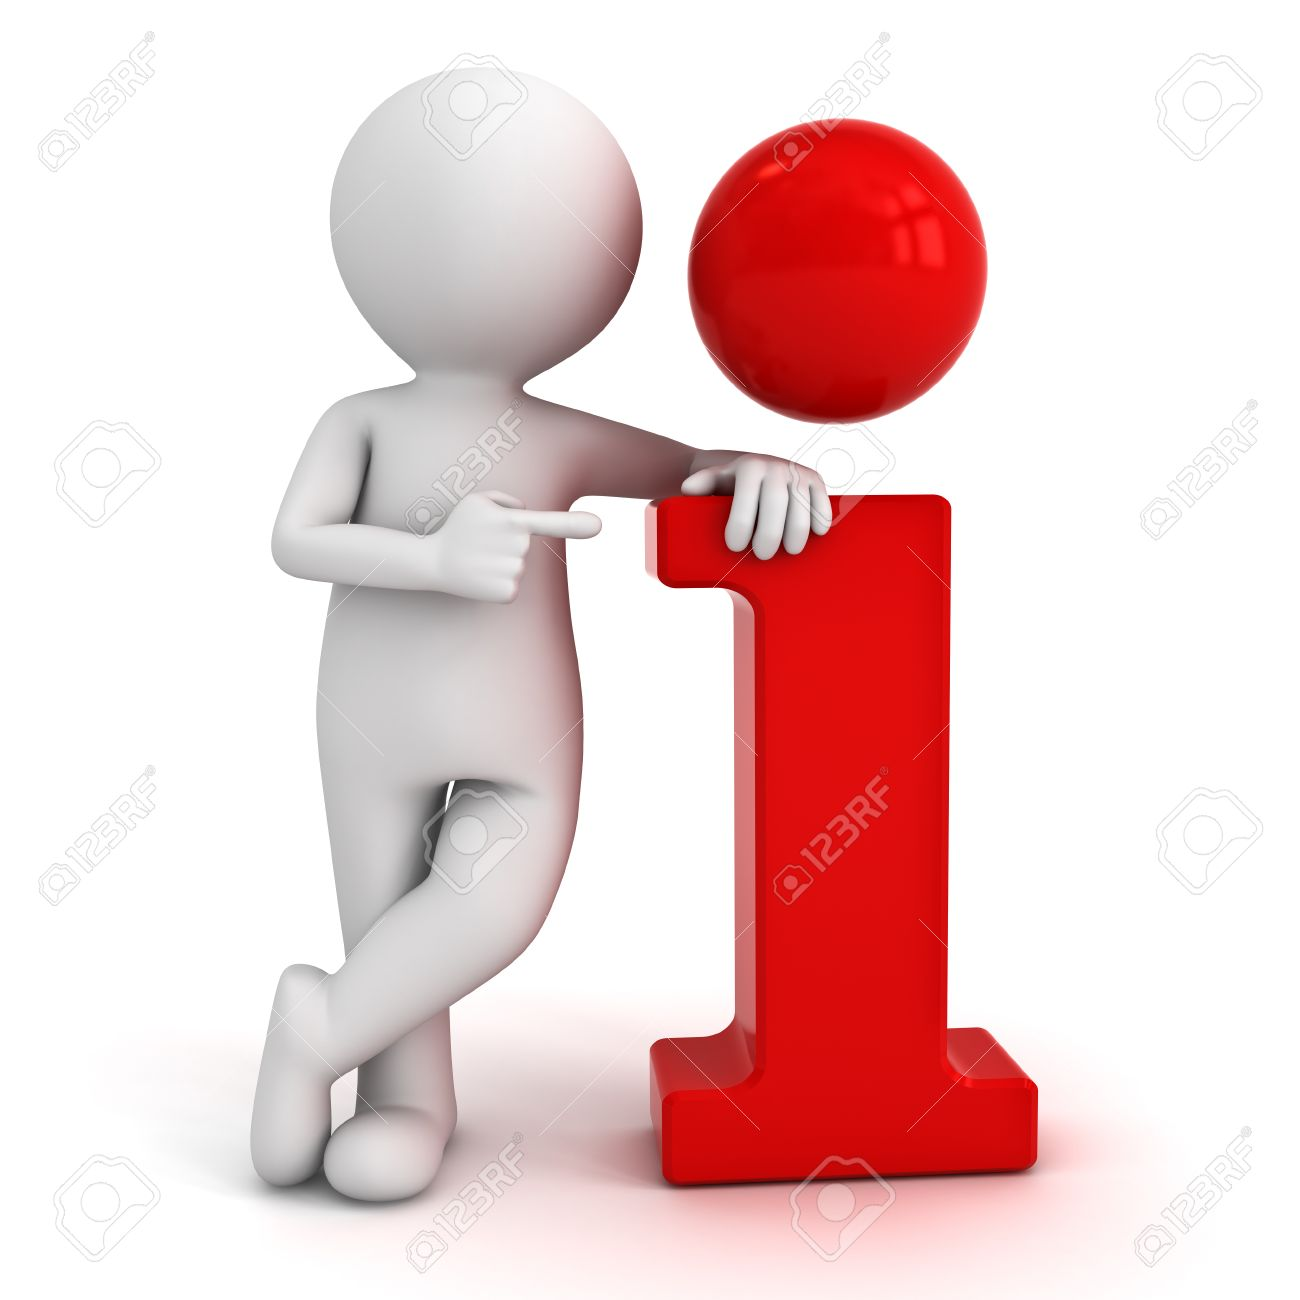 3d man leaning on red information icon and pointing finger at it isolated over white background Banque d'images - 25335770